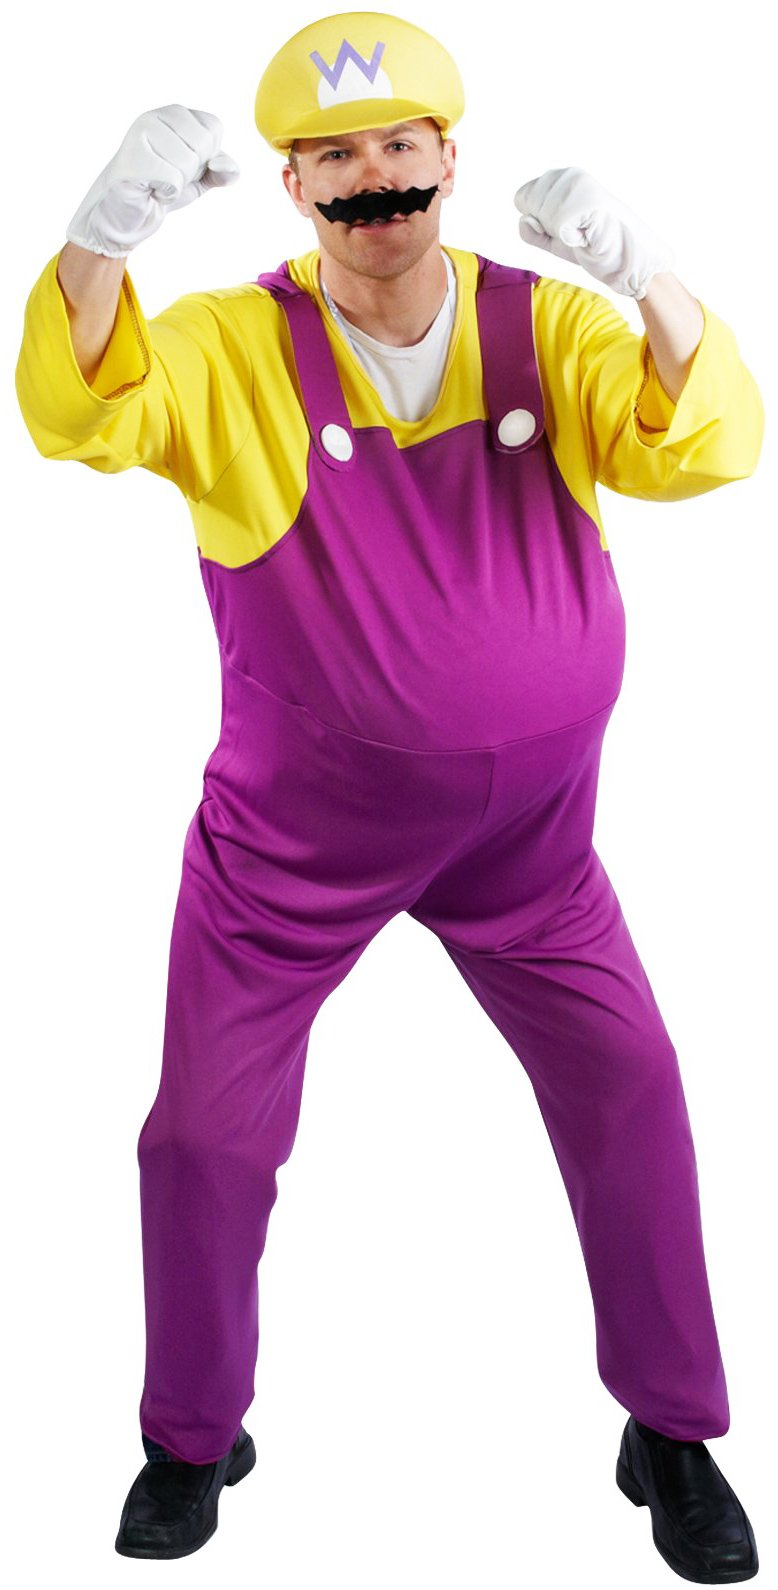 Super Mario Bros. - Wario Adult Costume